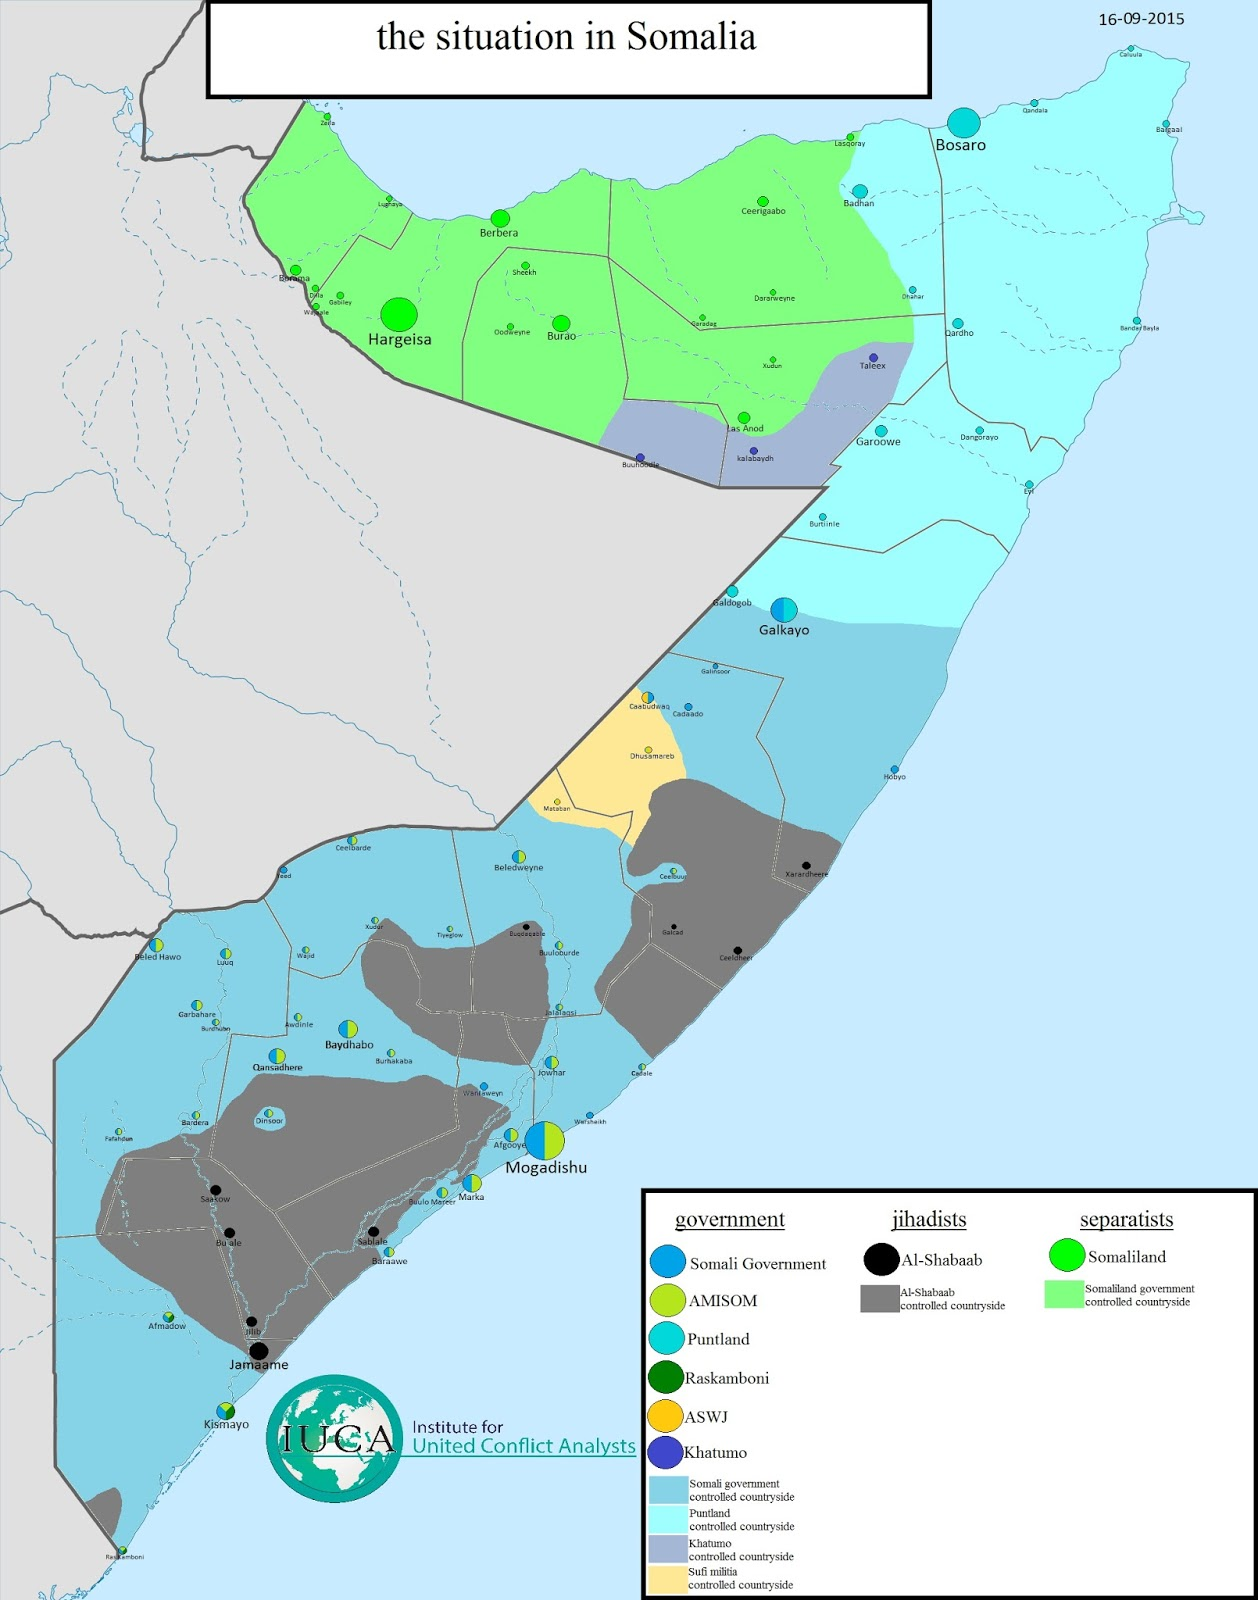 The Situation in Somalia